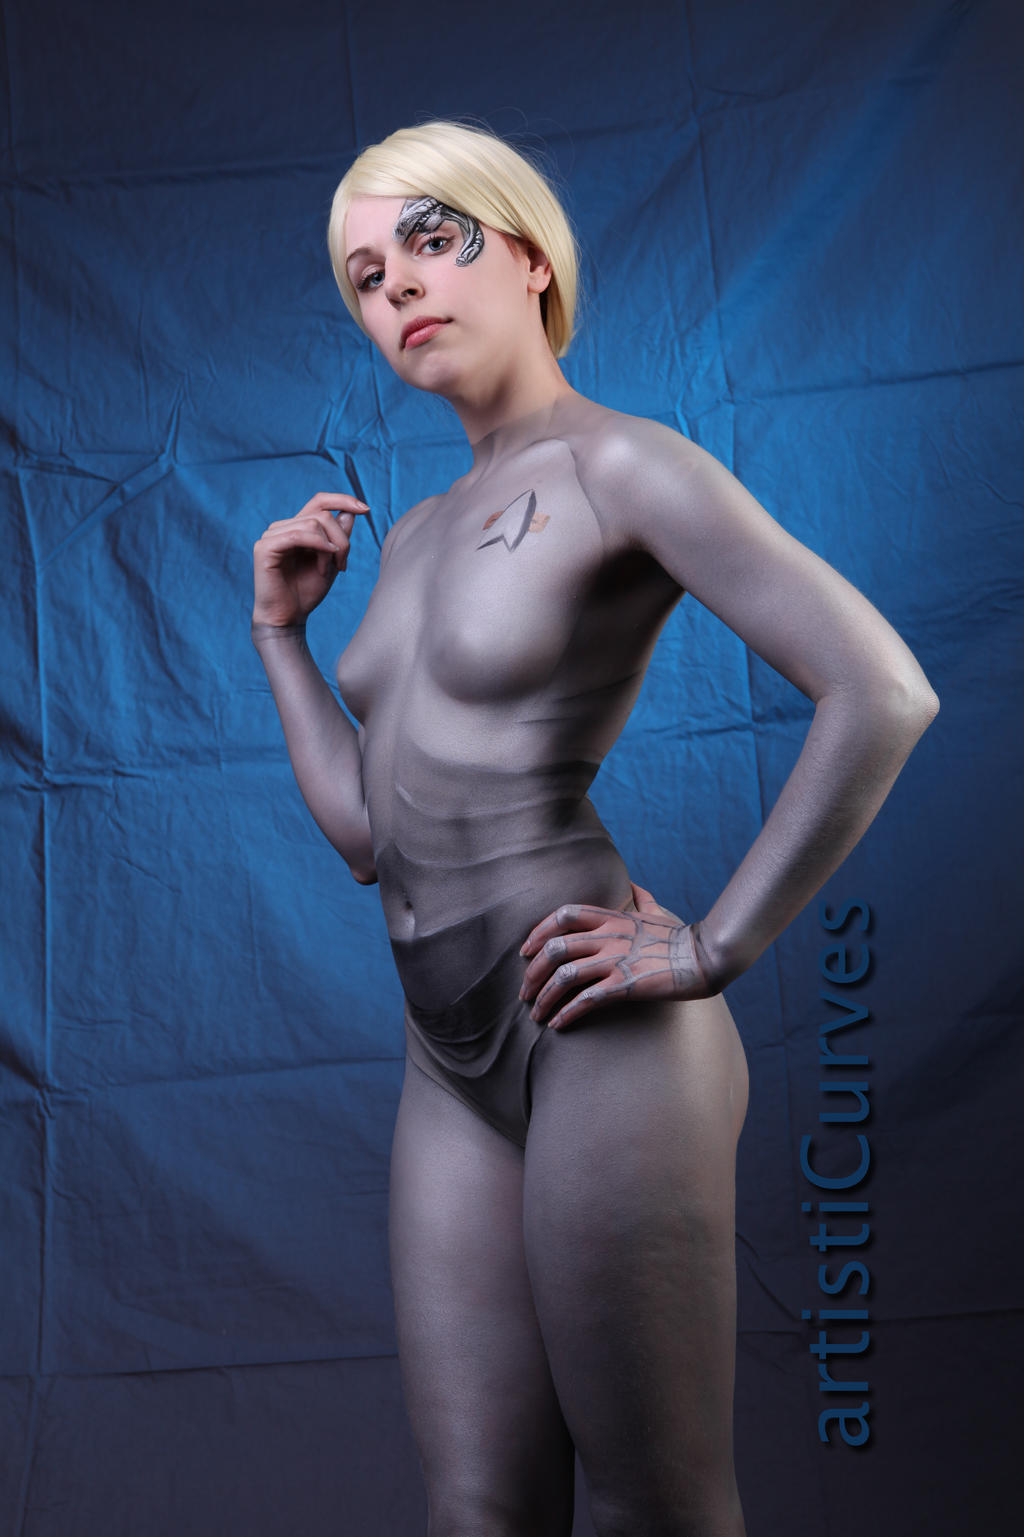 Seven of Nine body paint 6 by shelle-chii